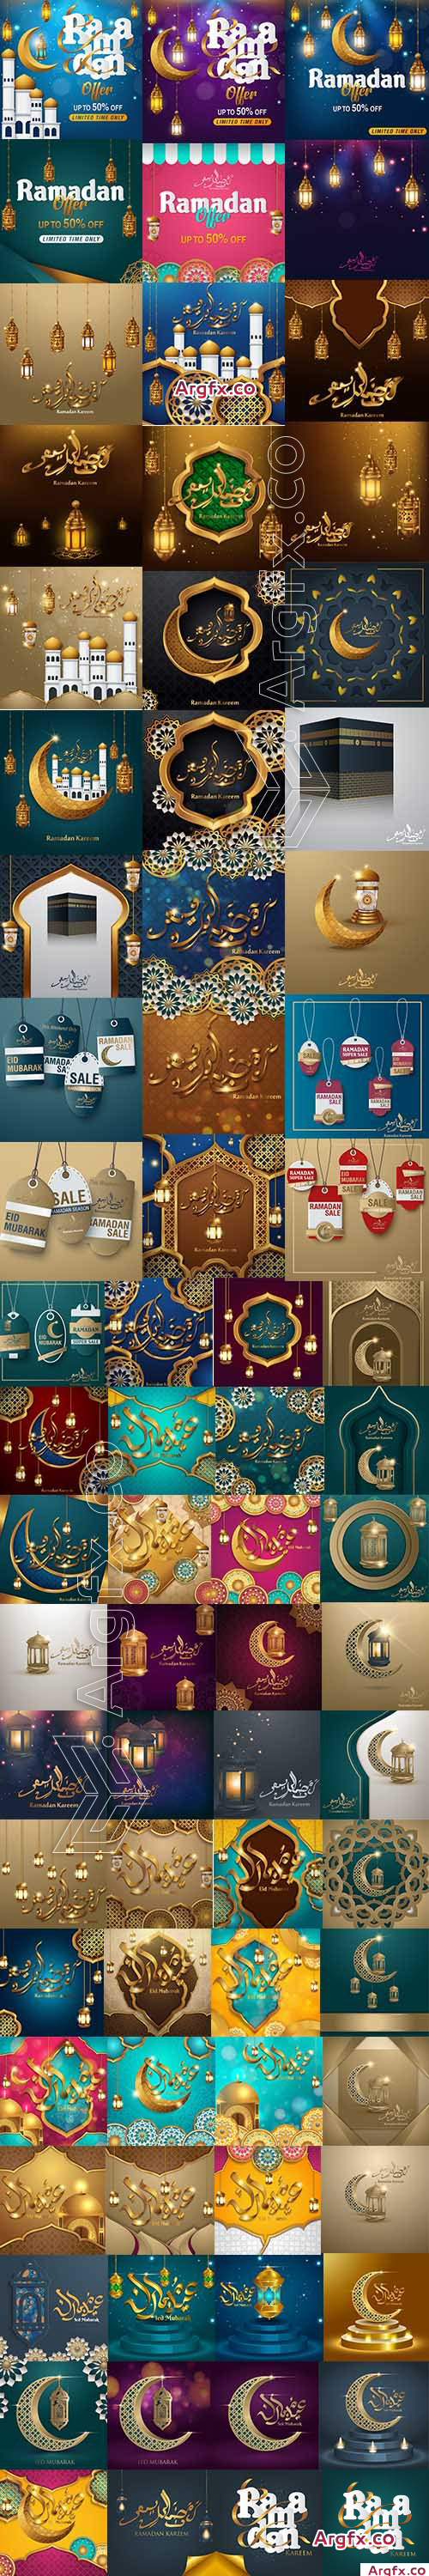 Happy Eid Mubarak and Ramadan Kareem Backgrounds Collection